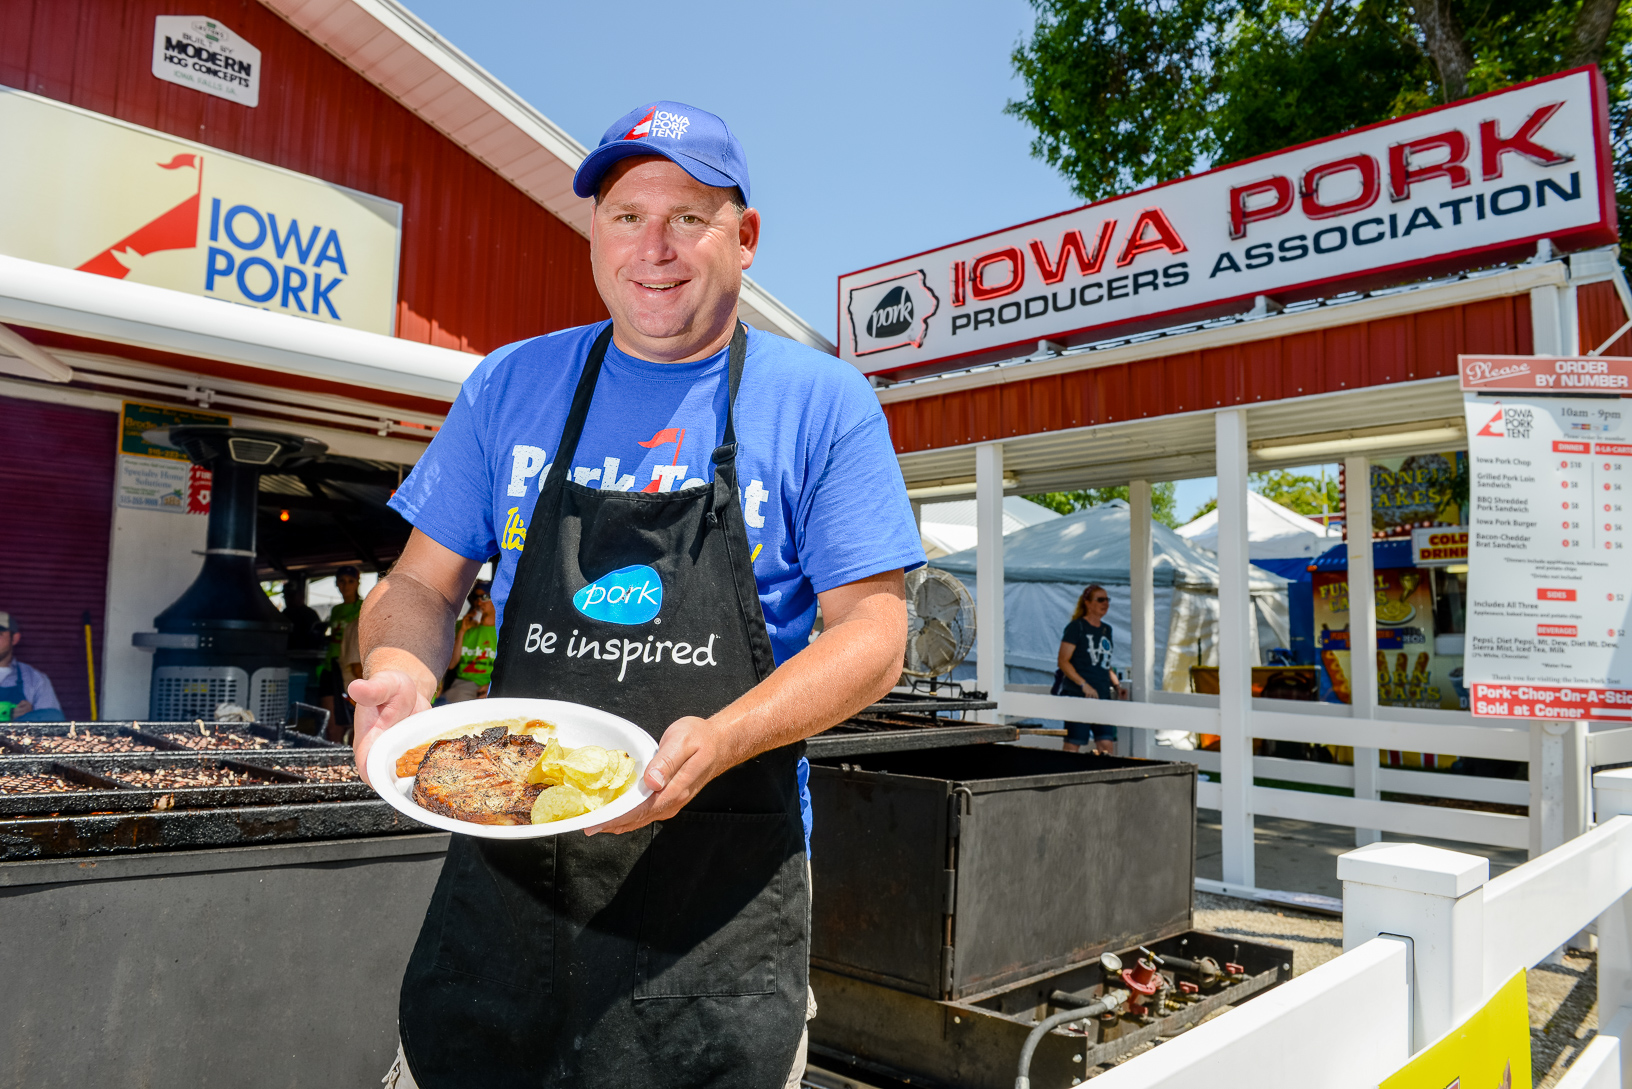 Iowa_State_Fair_food-2-4.jpg